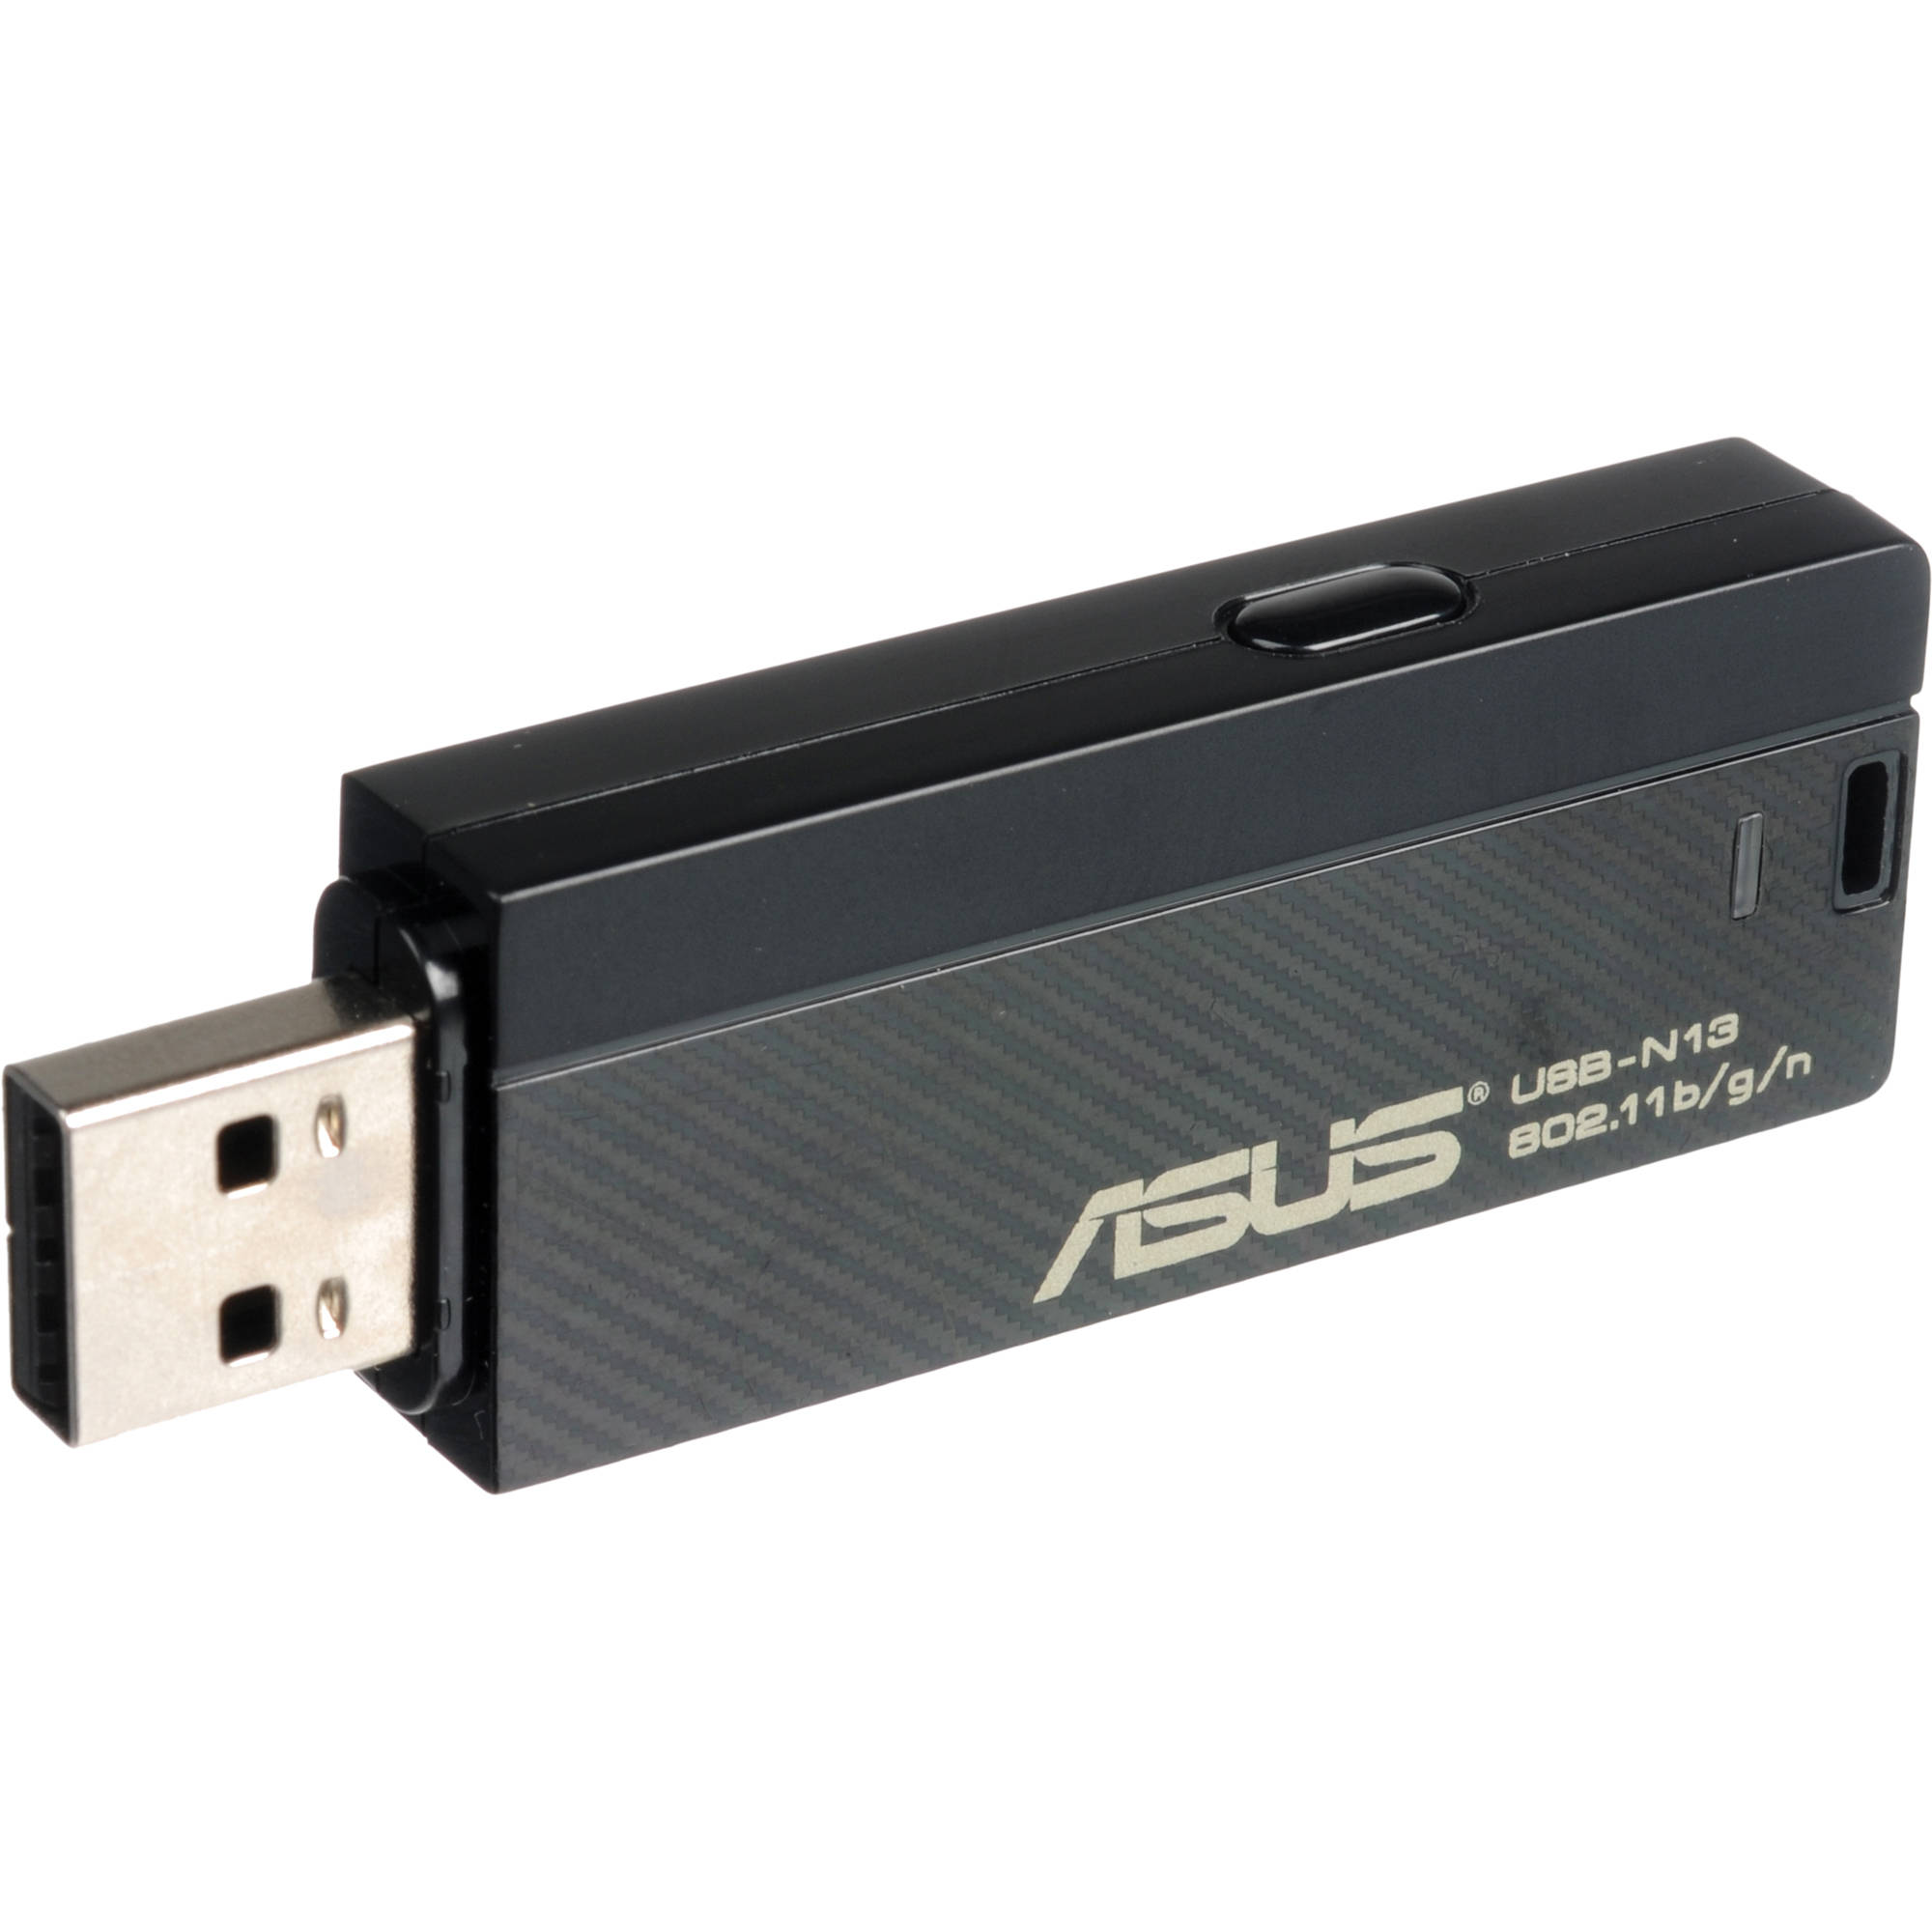 ASUS 802.11 NETWORK ADAPTER DRIVER WINDOWS